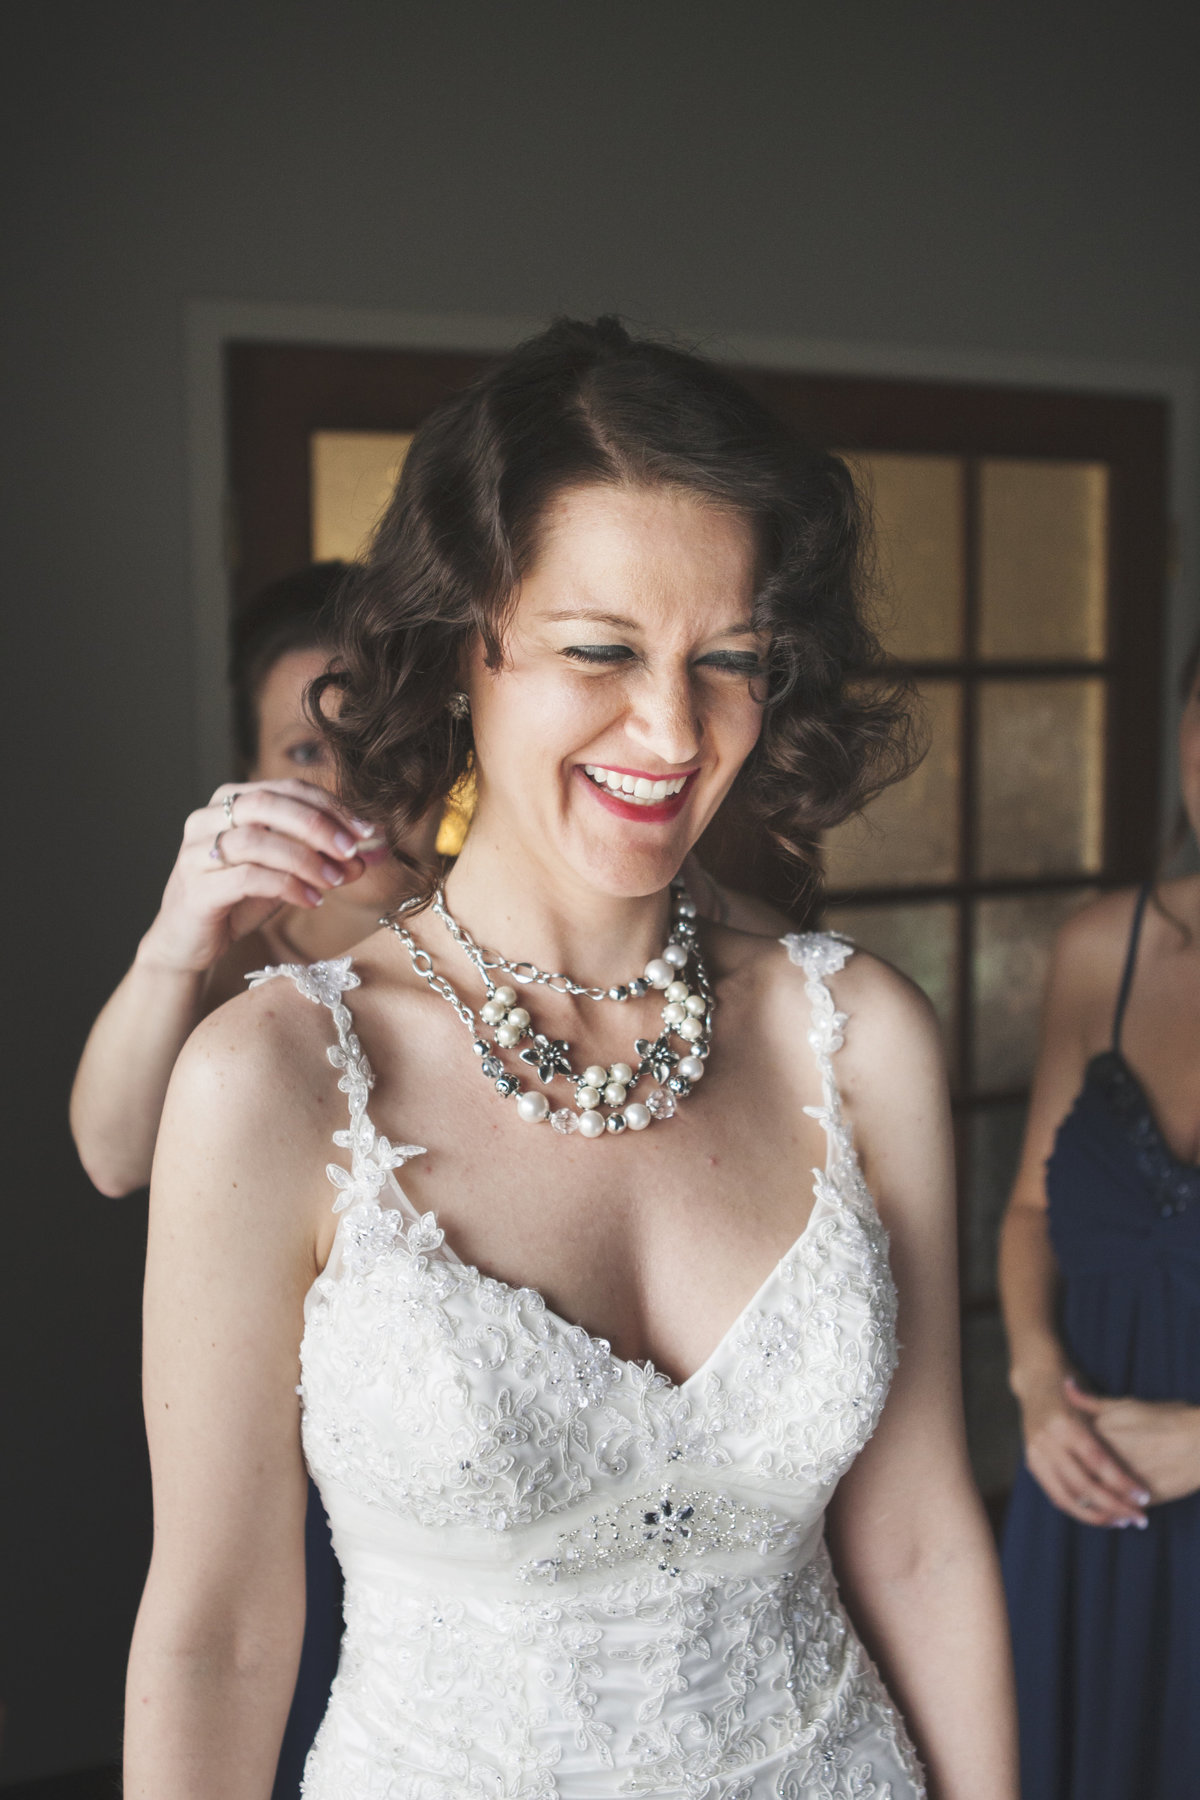 Elegant wedding getting ready by Casi Lea Photography-green bay wedding photographer-door county wedding photographer-milwaukee wedding photographer-appleton wedding photographer-wisconsin weddings